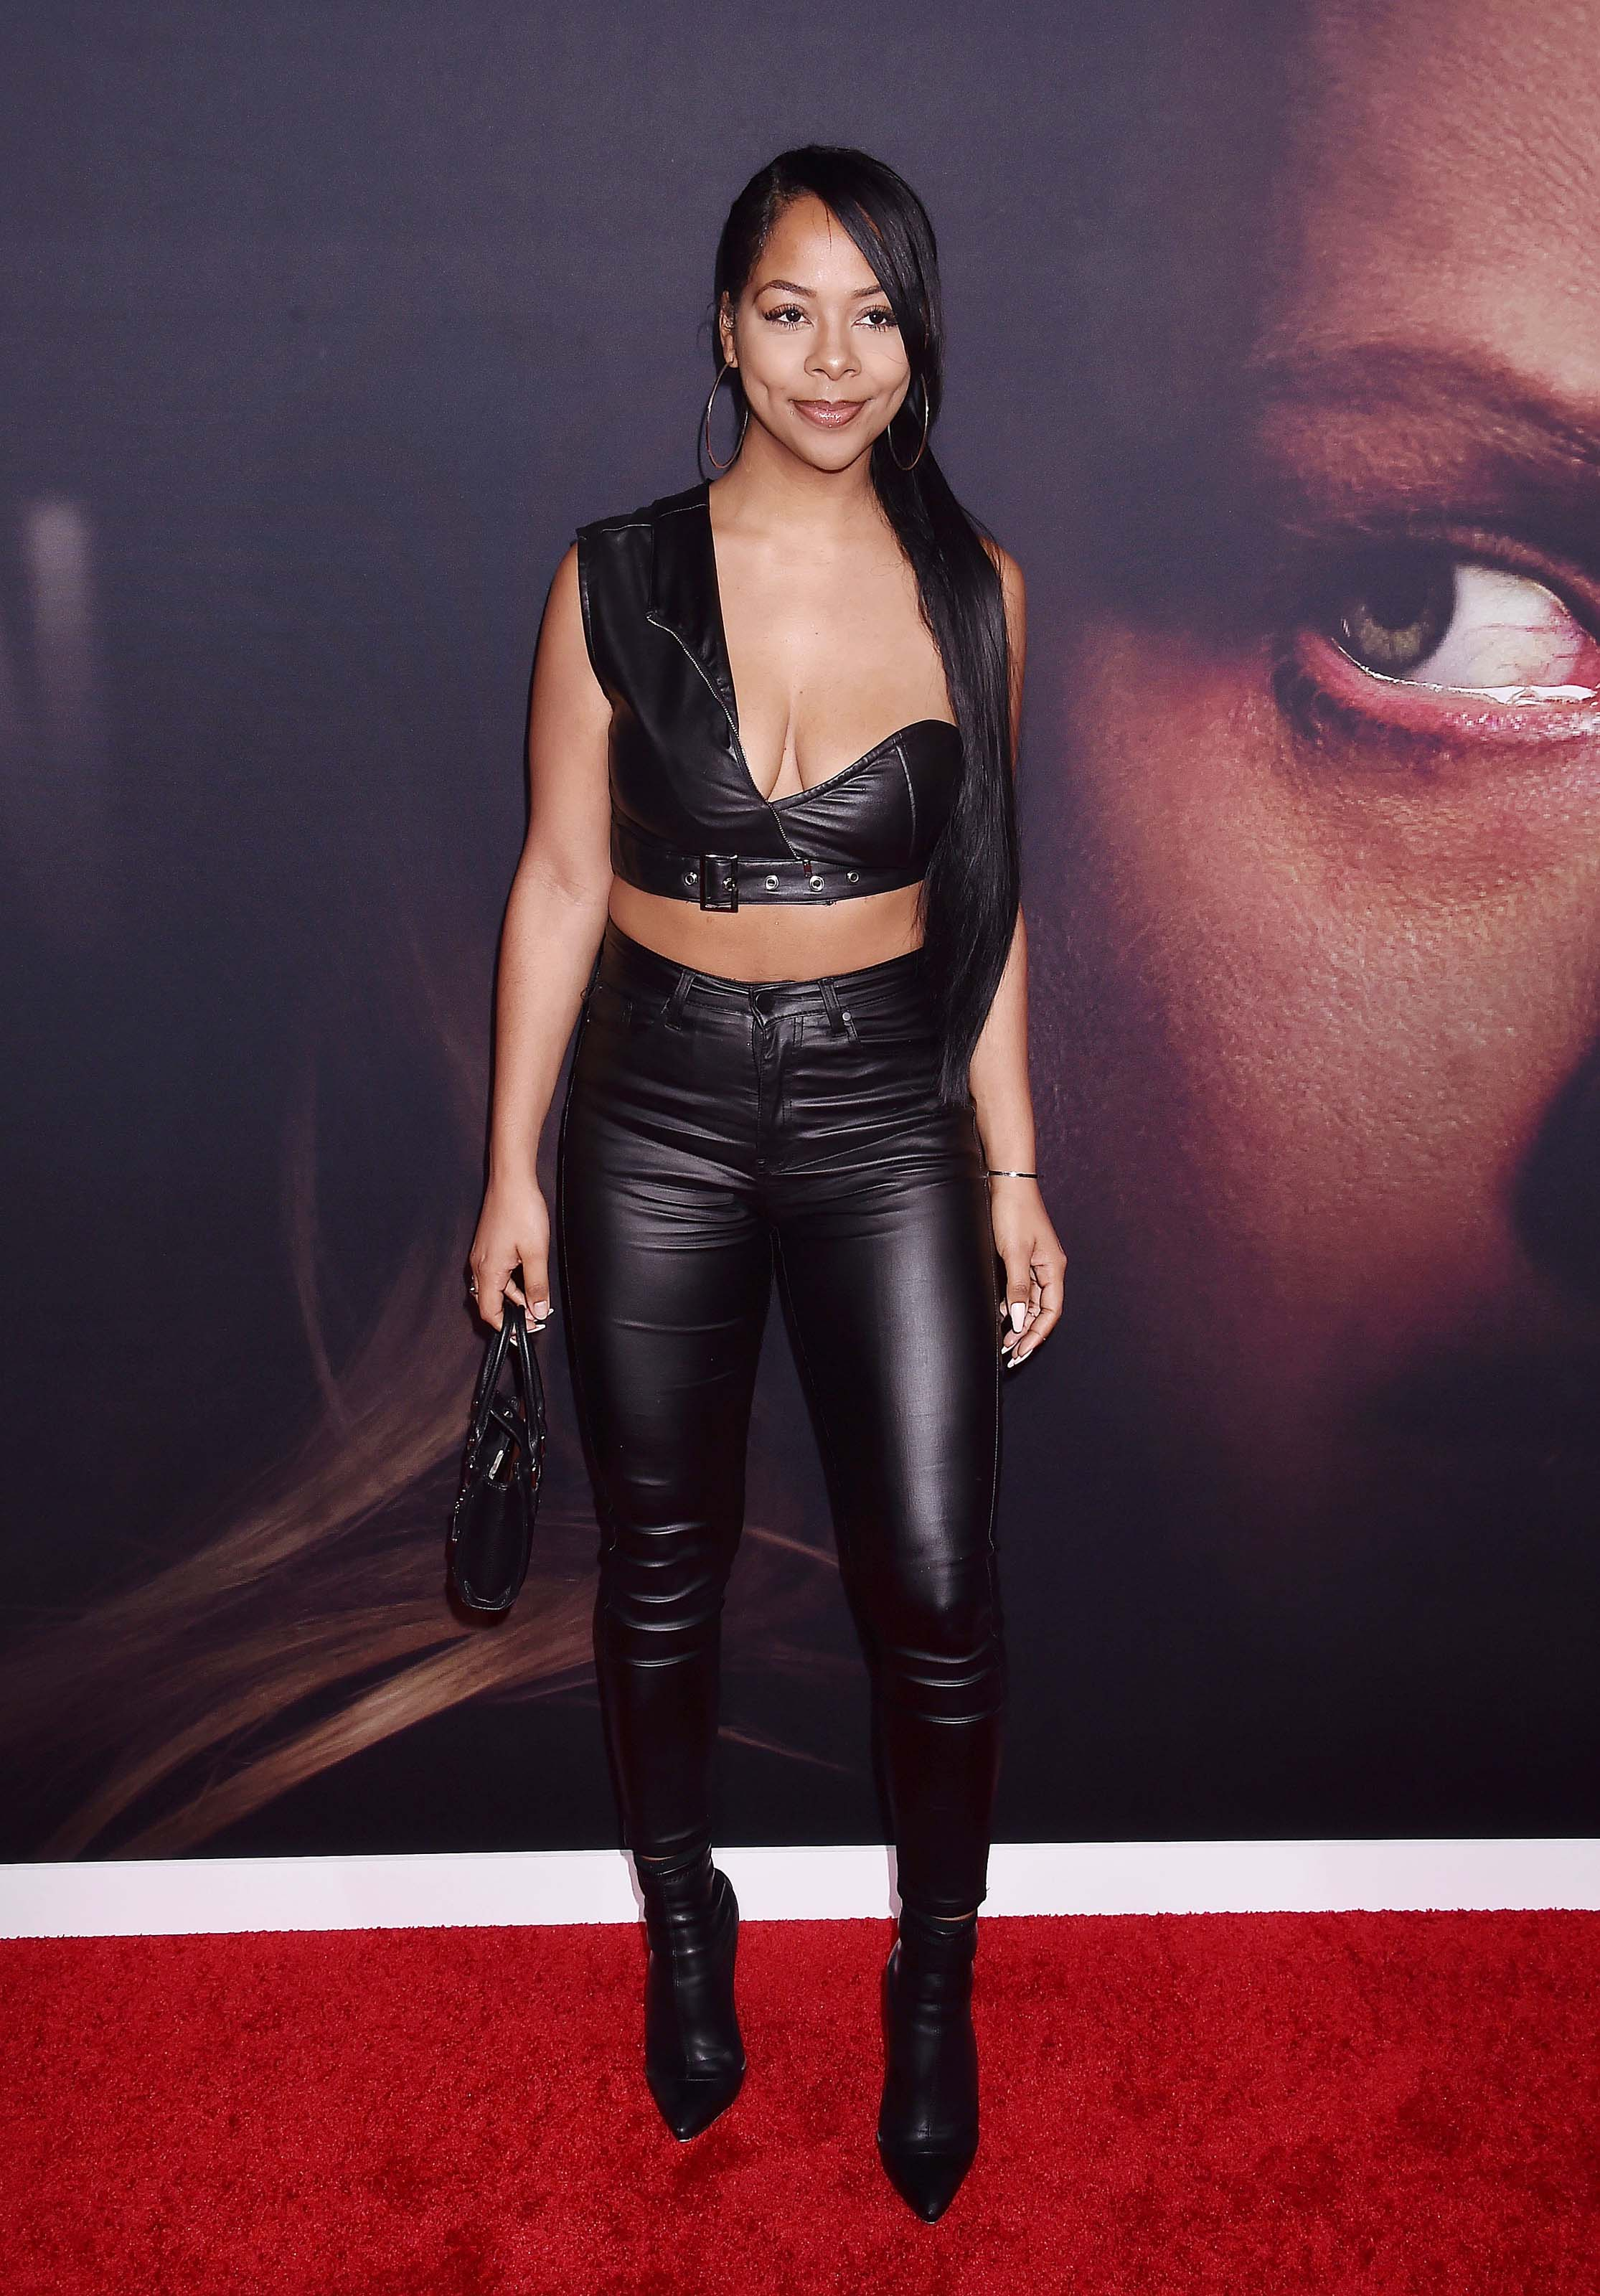 Yanira Pache attends The Invisible Man film premiere